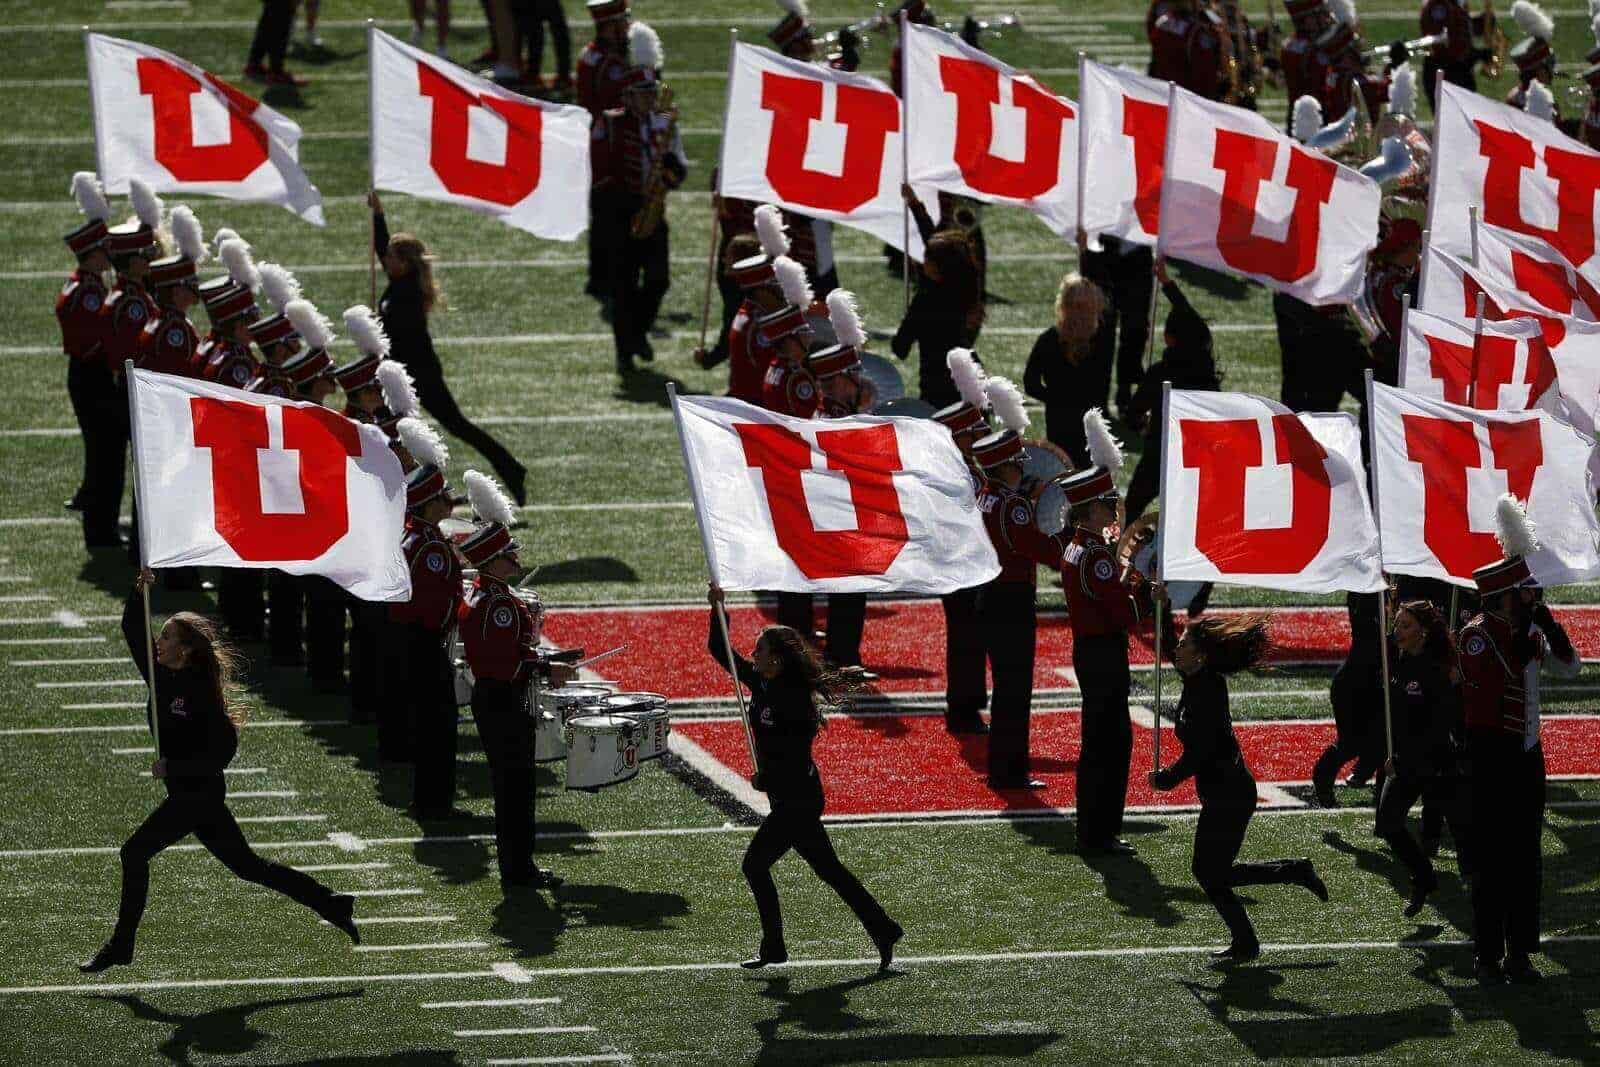 College Football Schedule: Utah